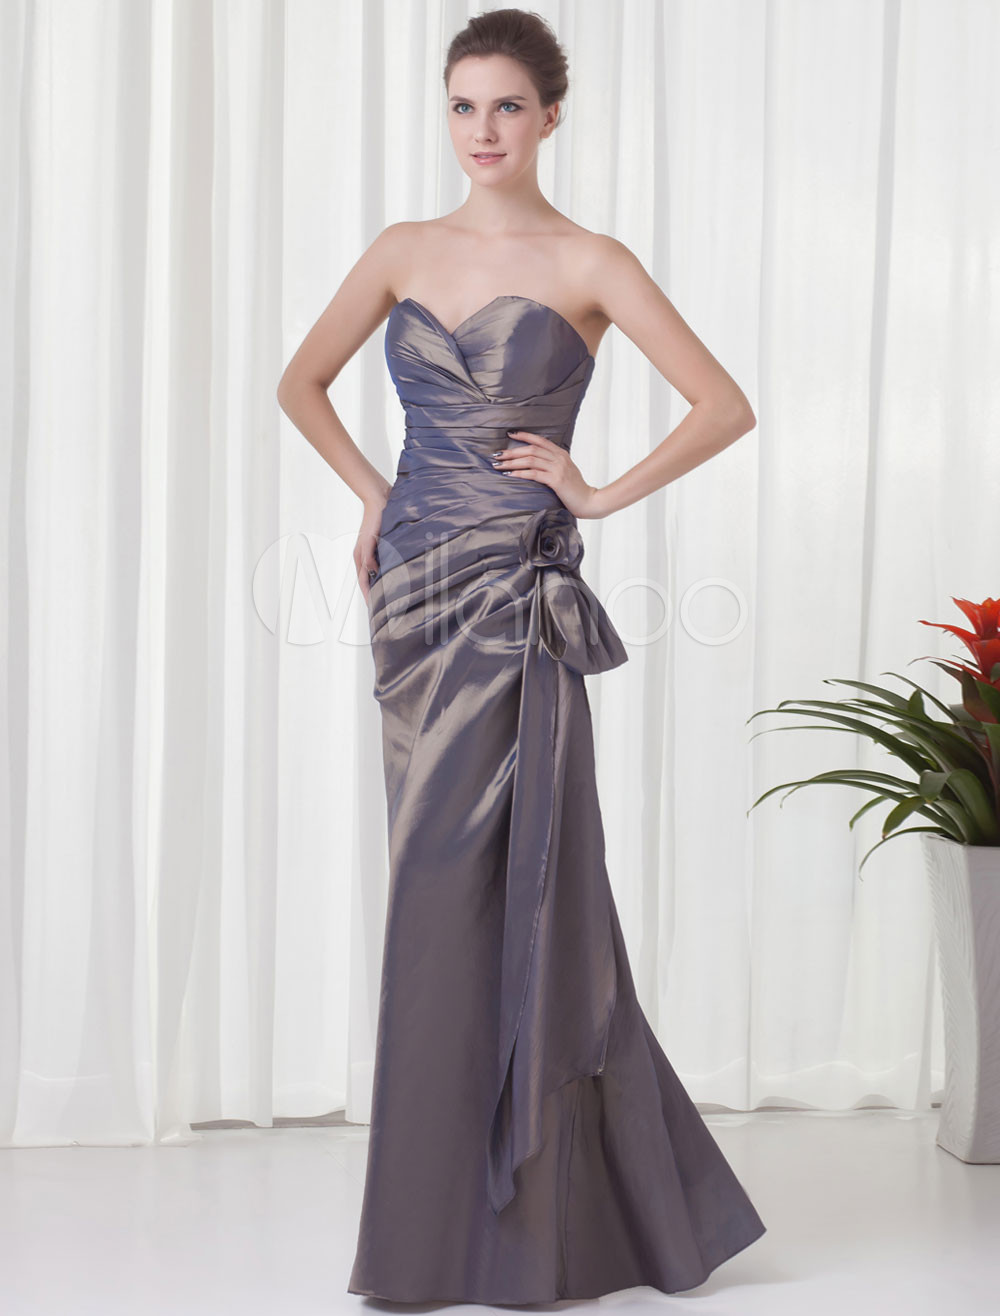 Sheath Dark Navy Taffeta Floral Sweetheart Bridesmaid Dress